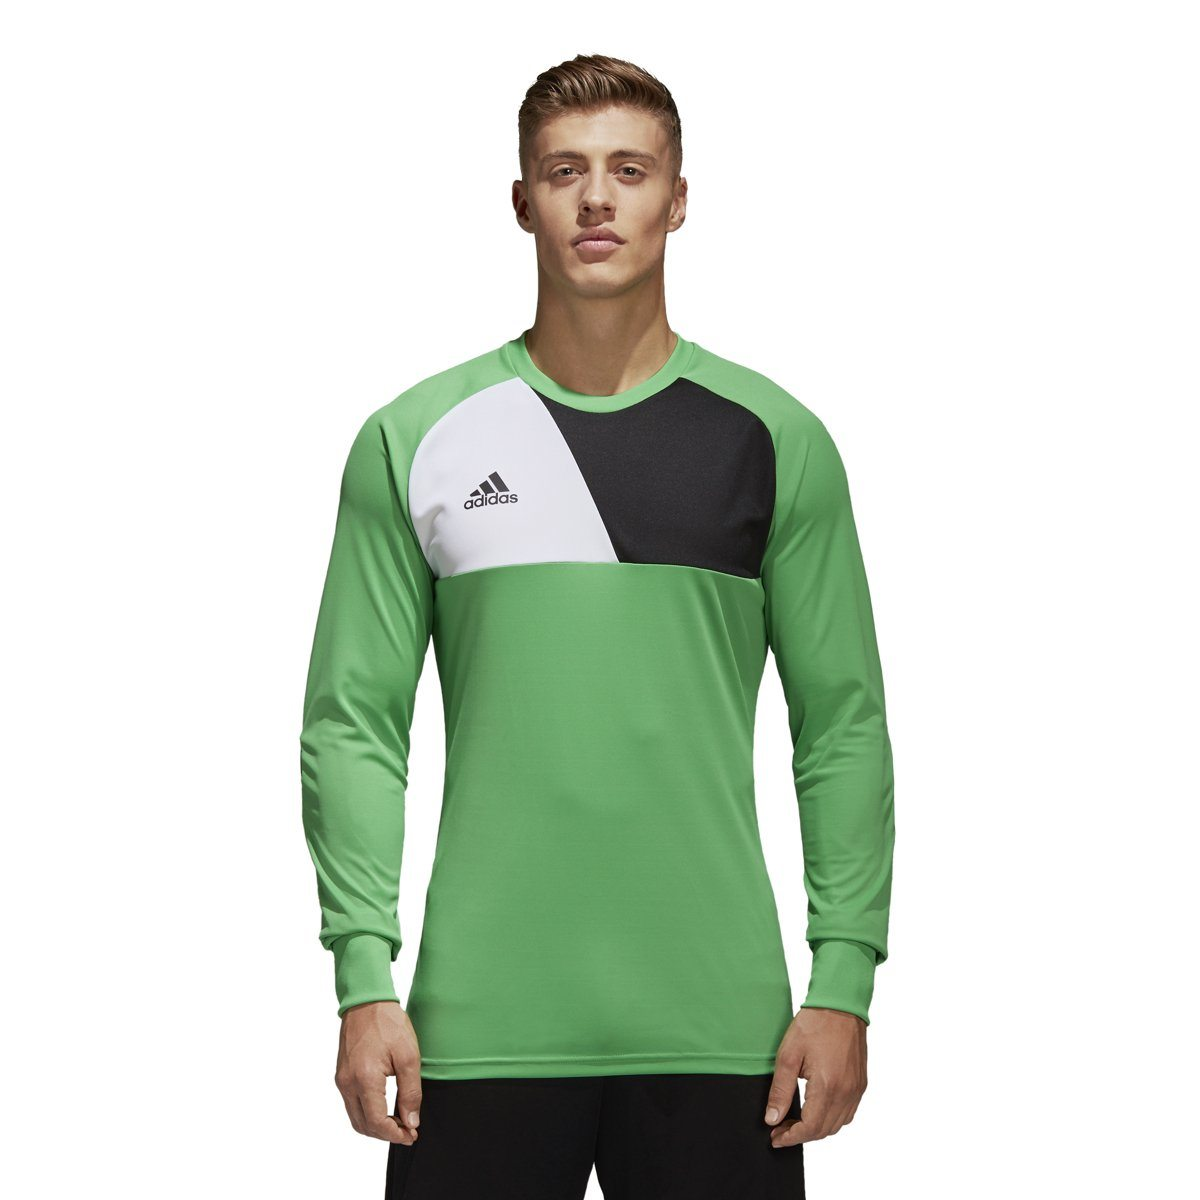 adidas Men's Assita 17 Goalkeeper Jersey Goalkeeper Gear adidas Energy Green/White/Black X-Small